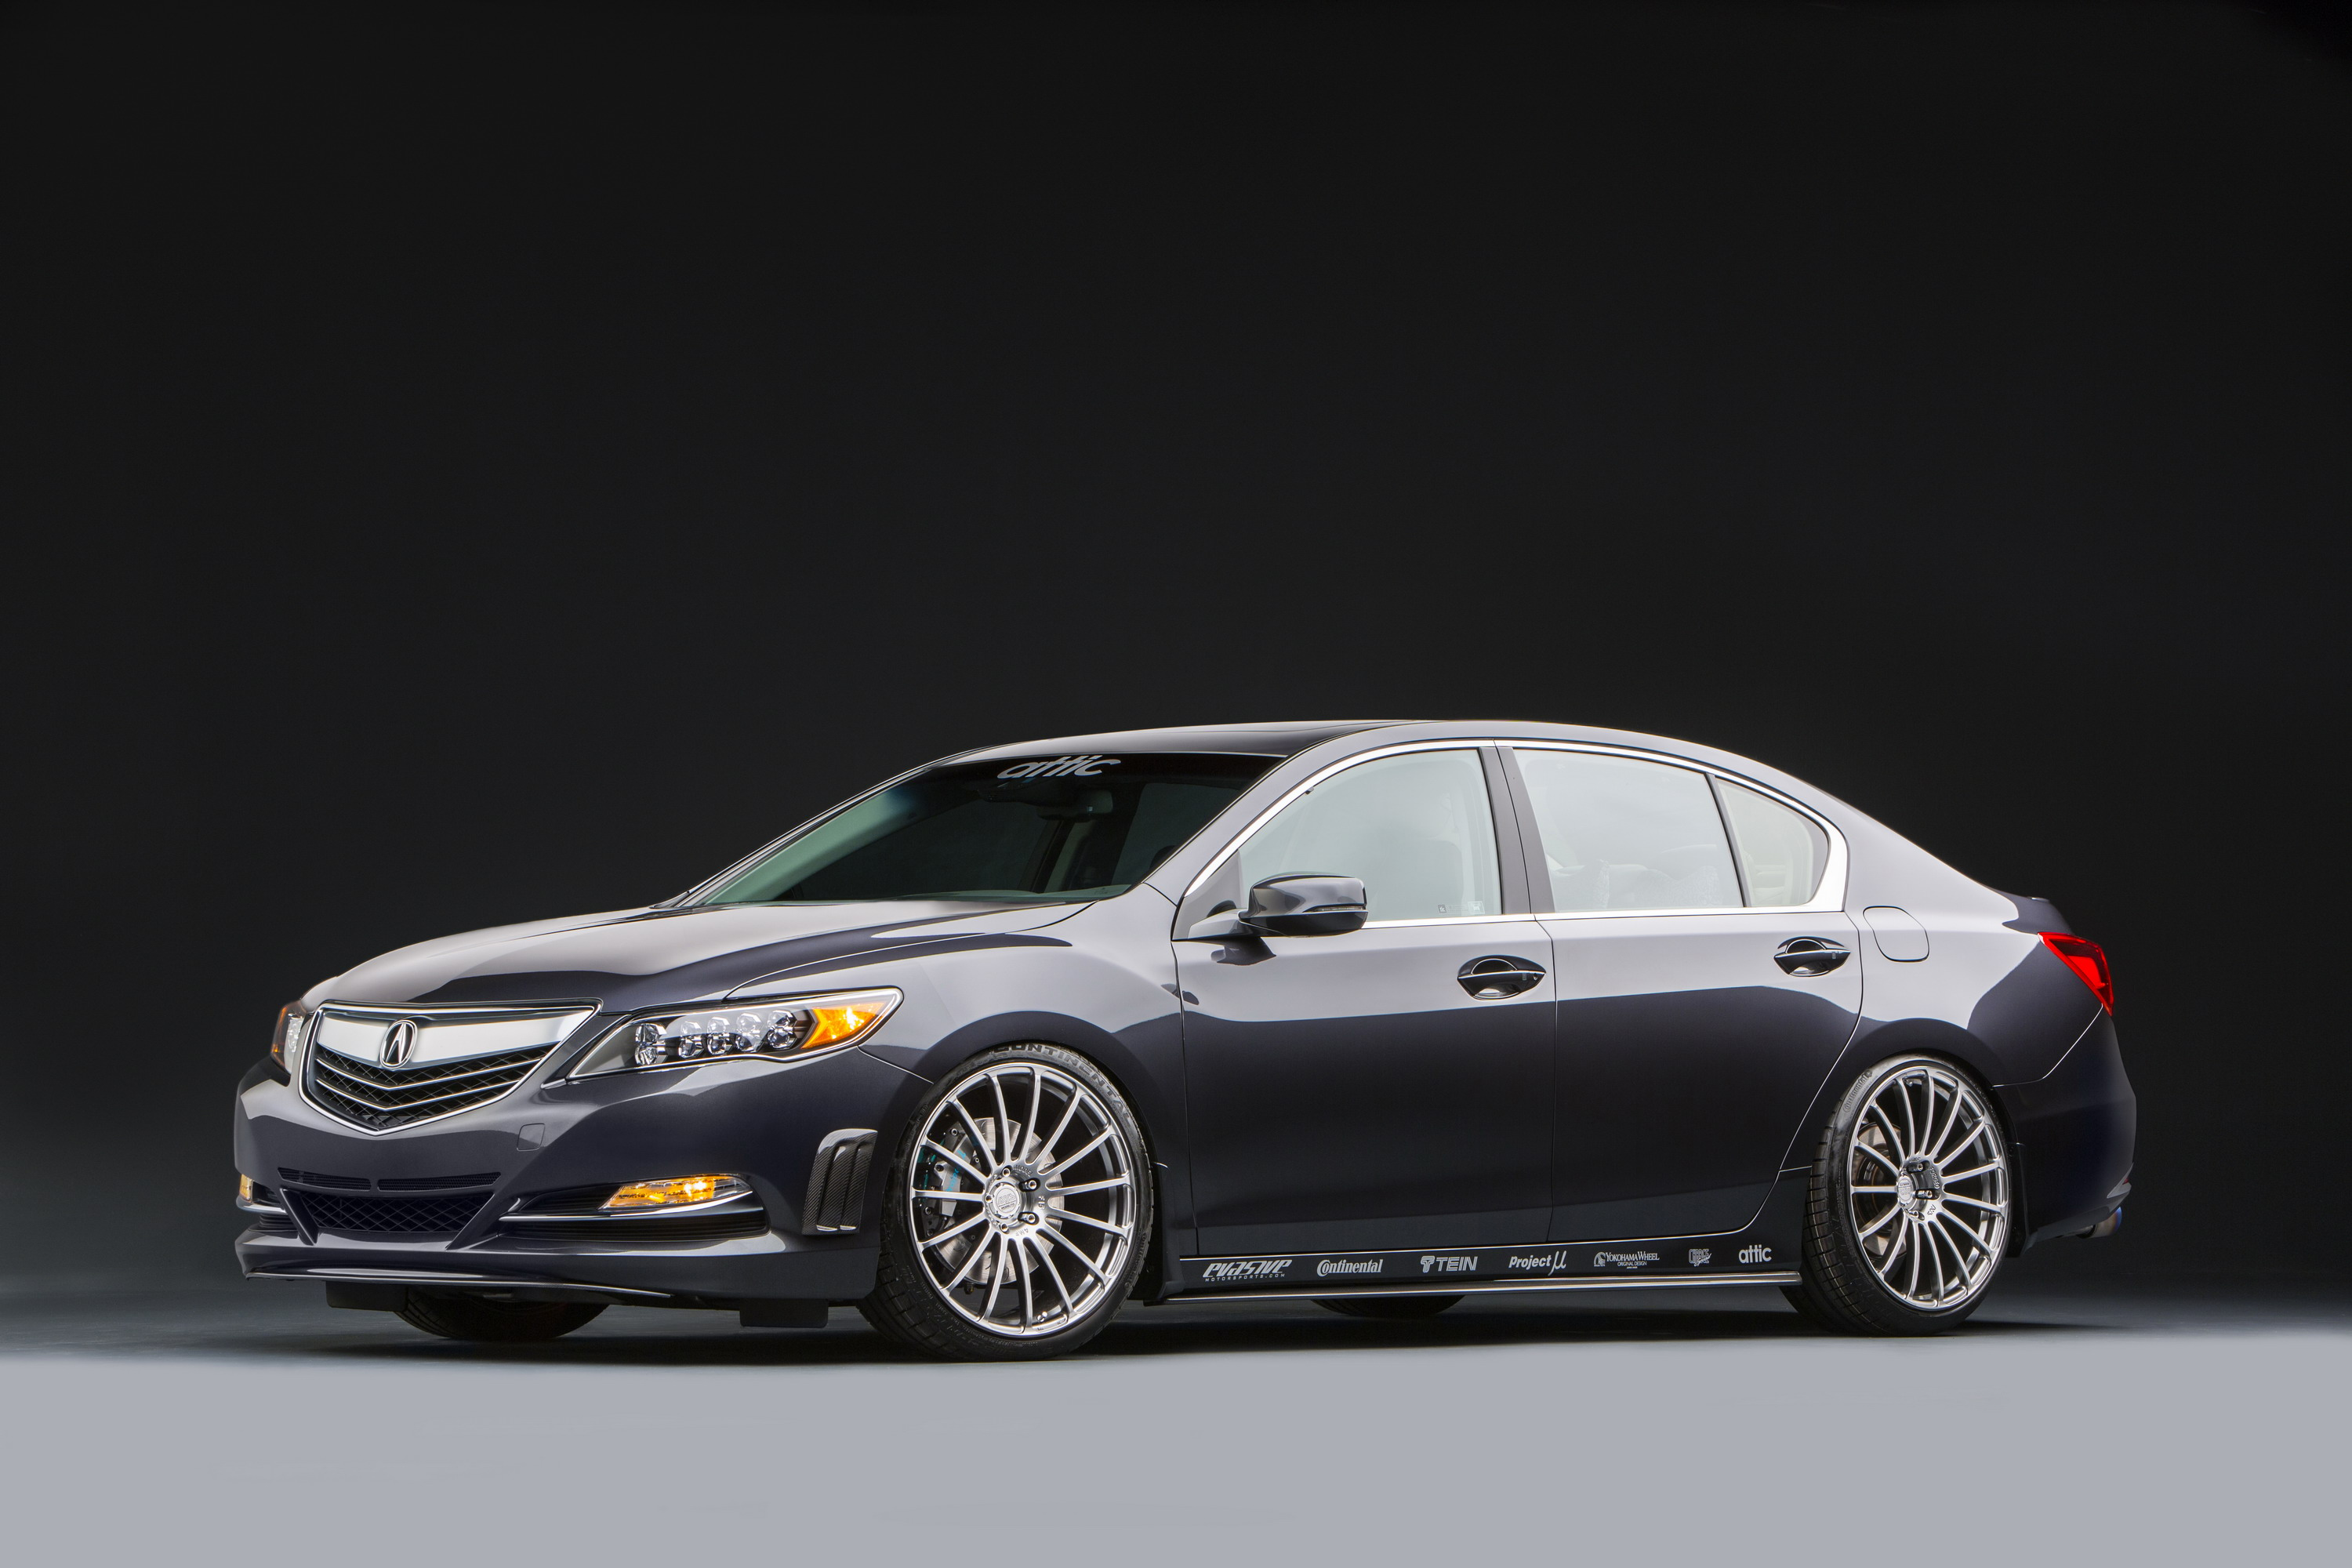 2014 acura rlx vip special edition review top speed. Black Bedroom Furniture Sets. Home Design Ideas